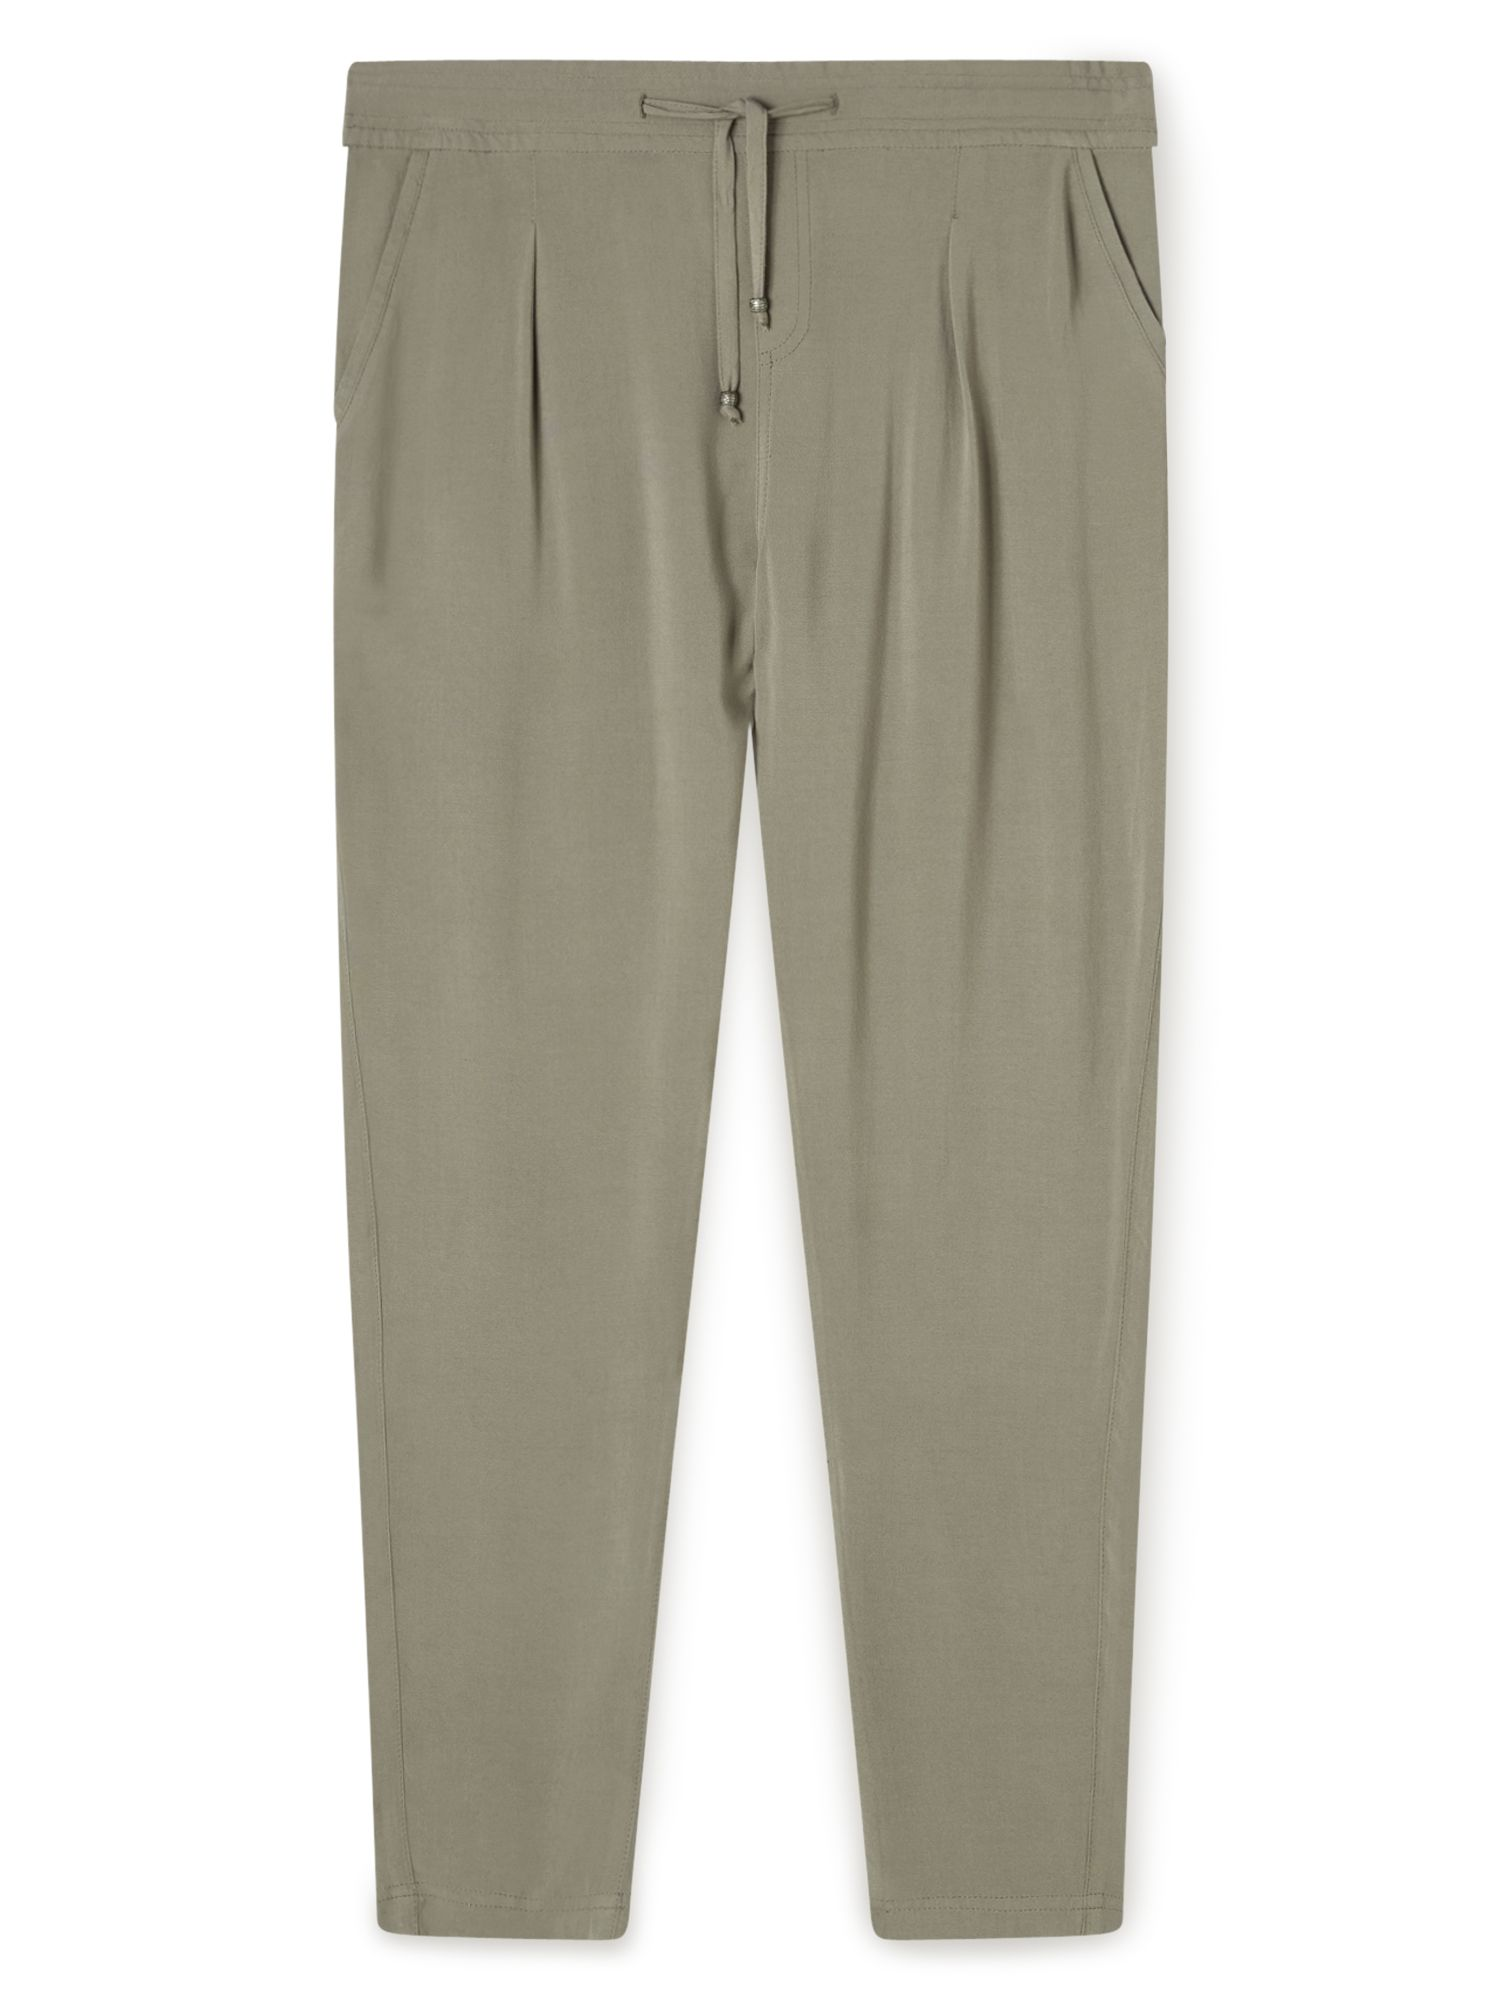 Dash Khaki Trouser, Green